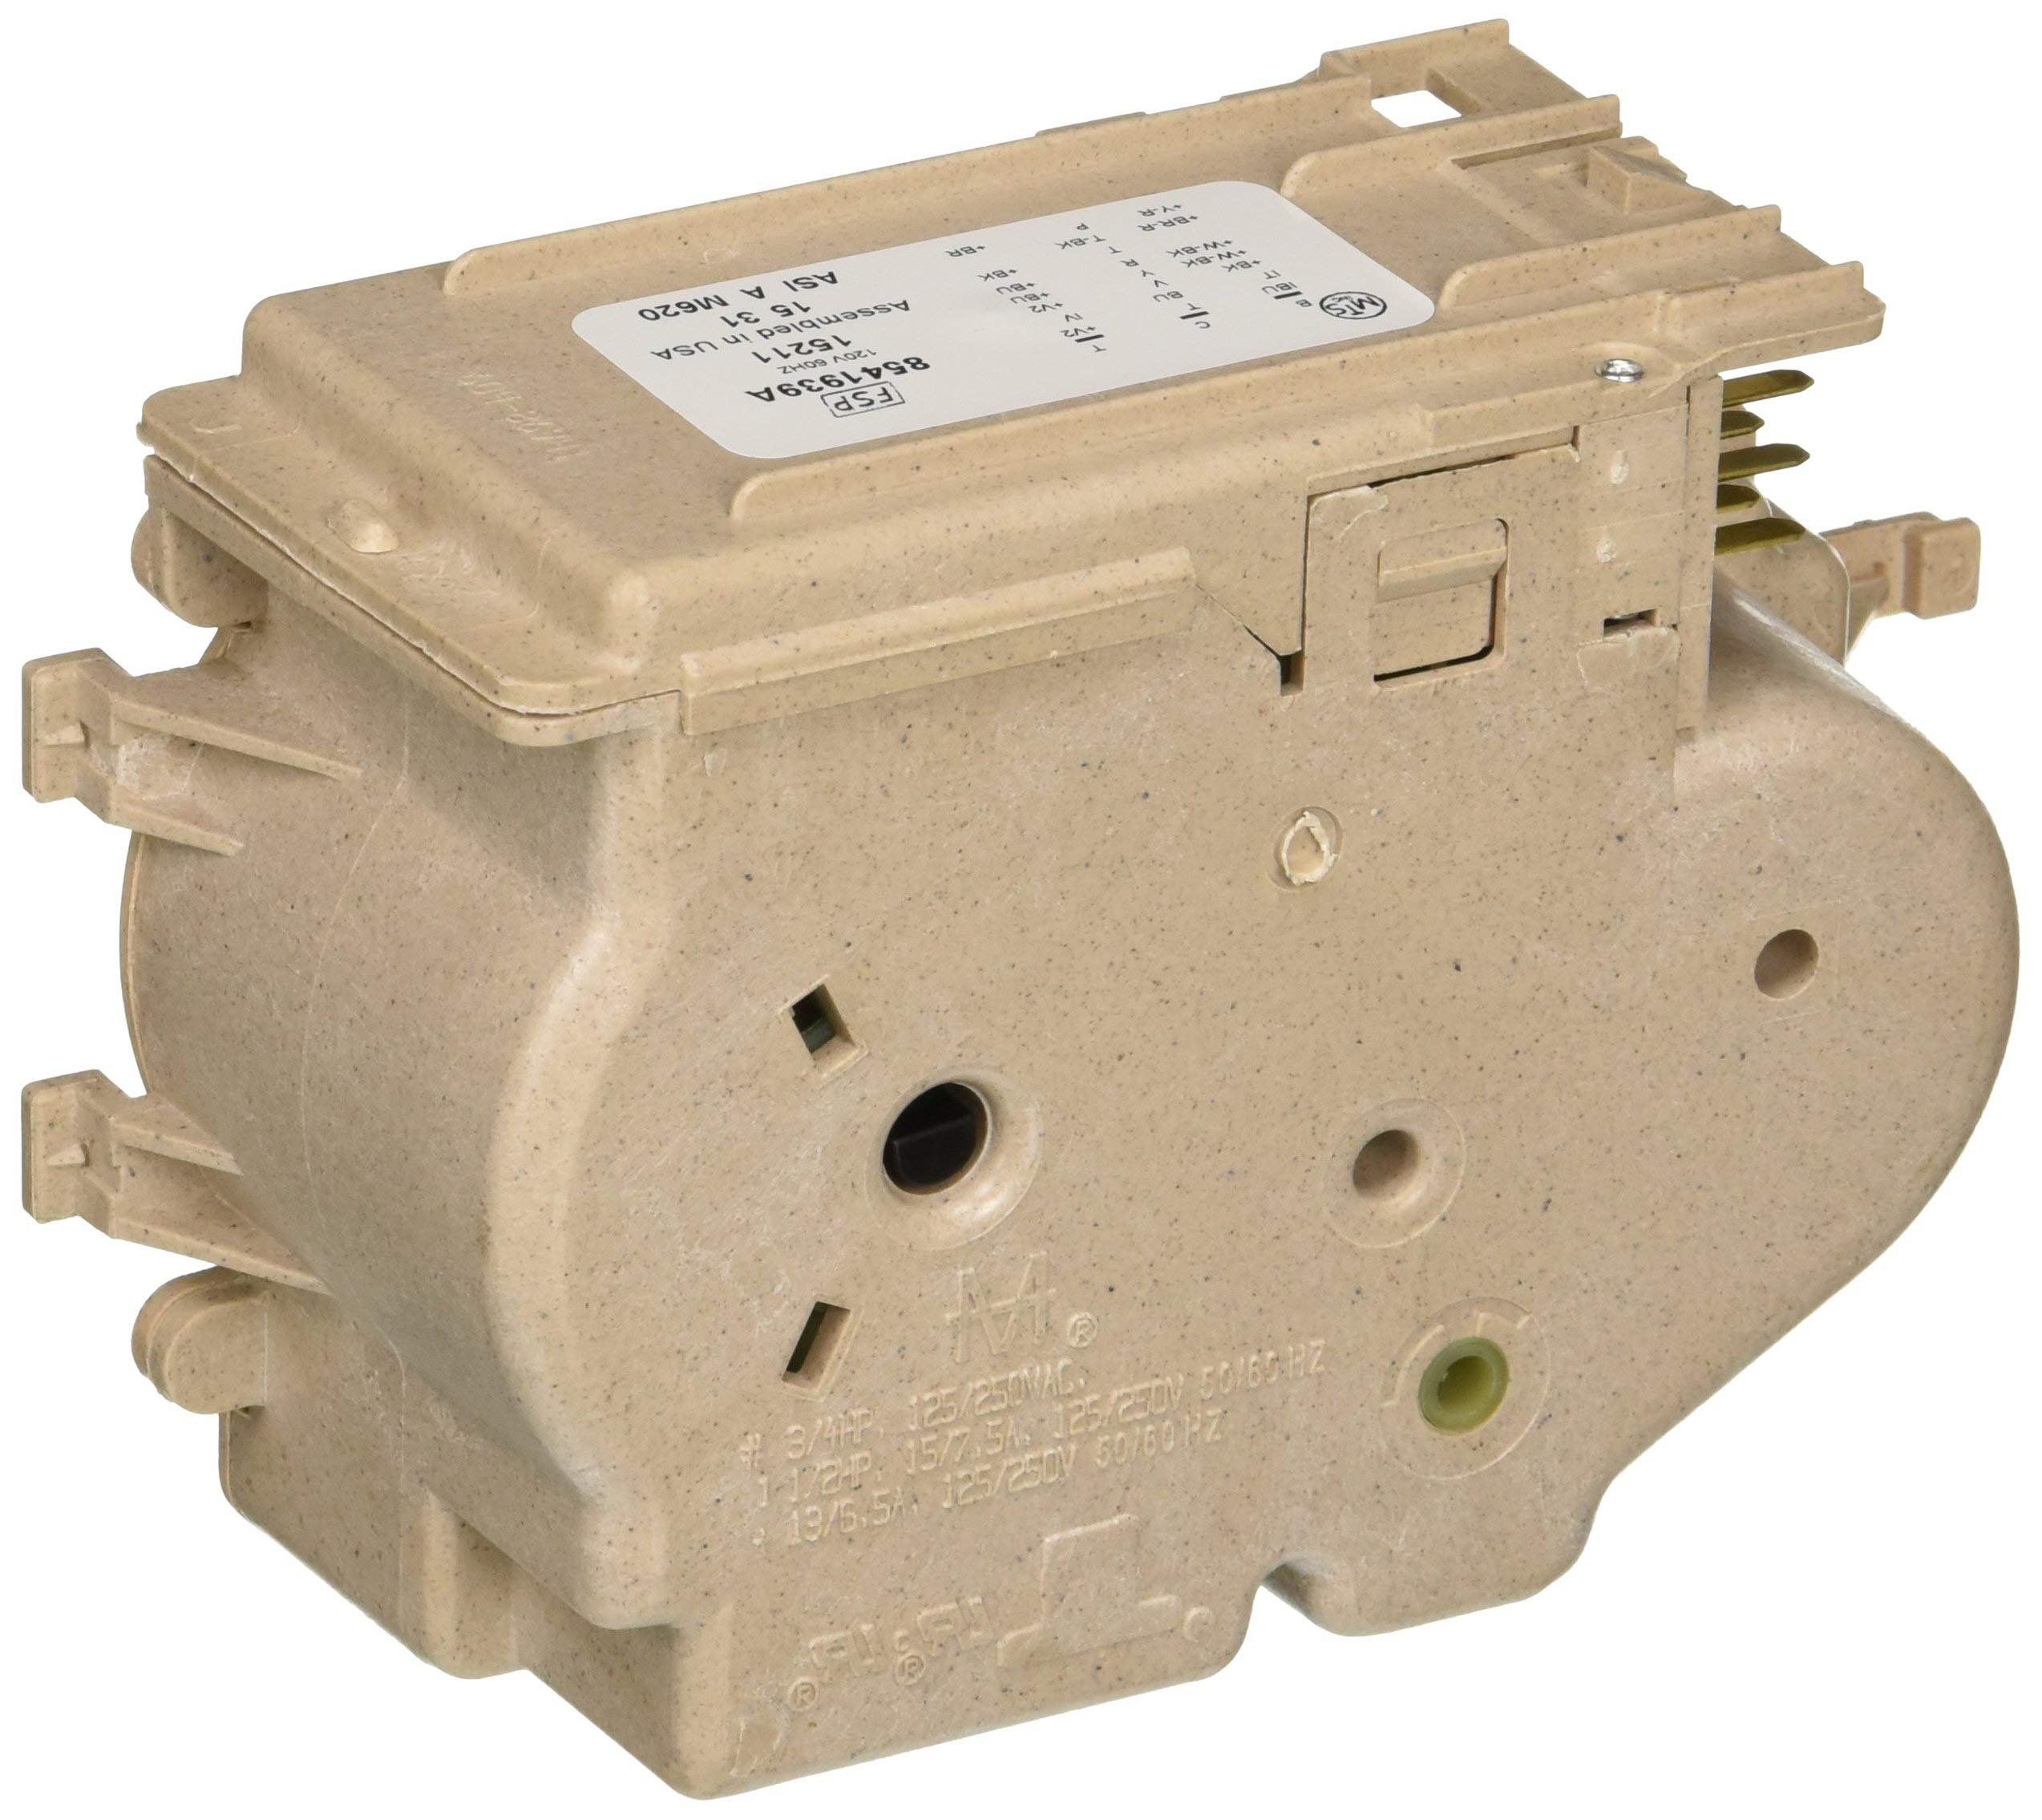 8541939 Whirlpool Washer Timer Renewed SAME DAY SHIP by Whirlpool (Image #2)